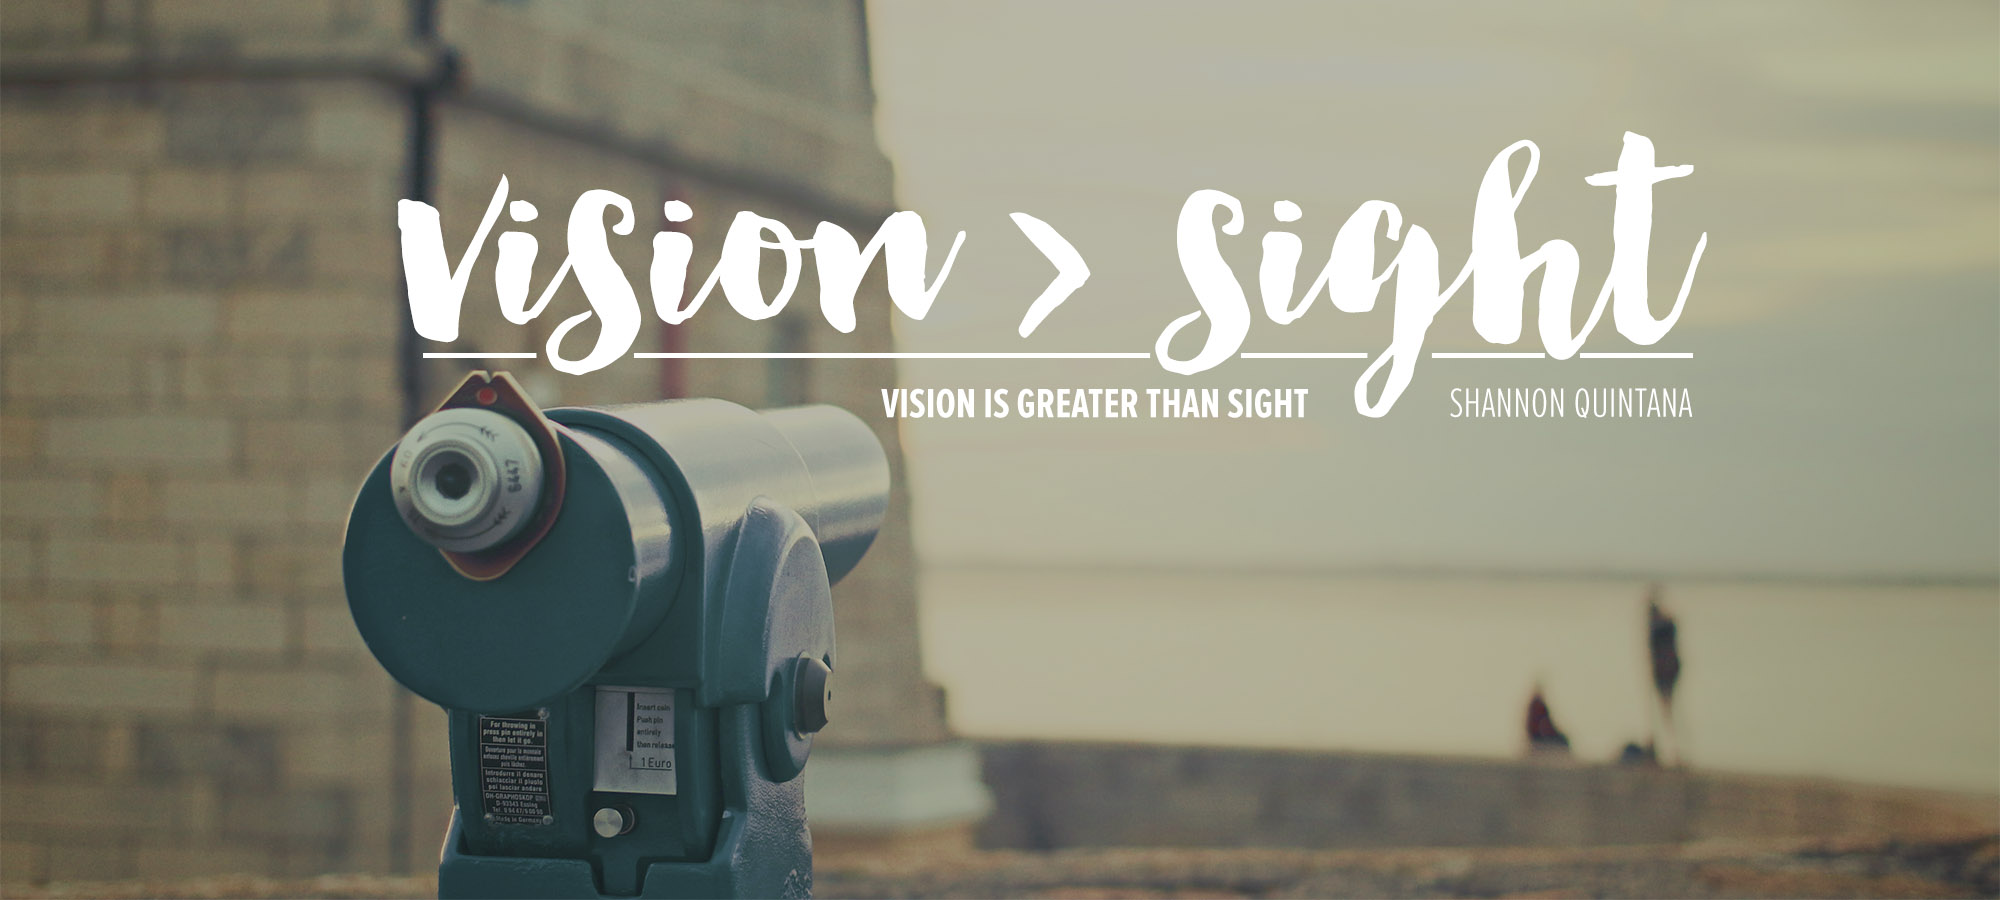 Vision > Sight: Vision is Greater than Sight